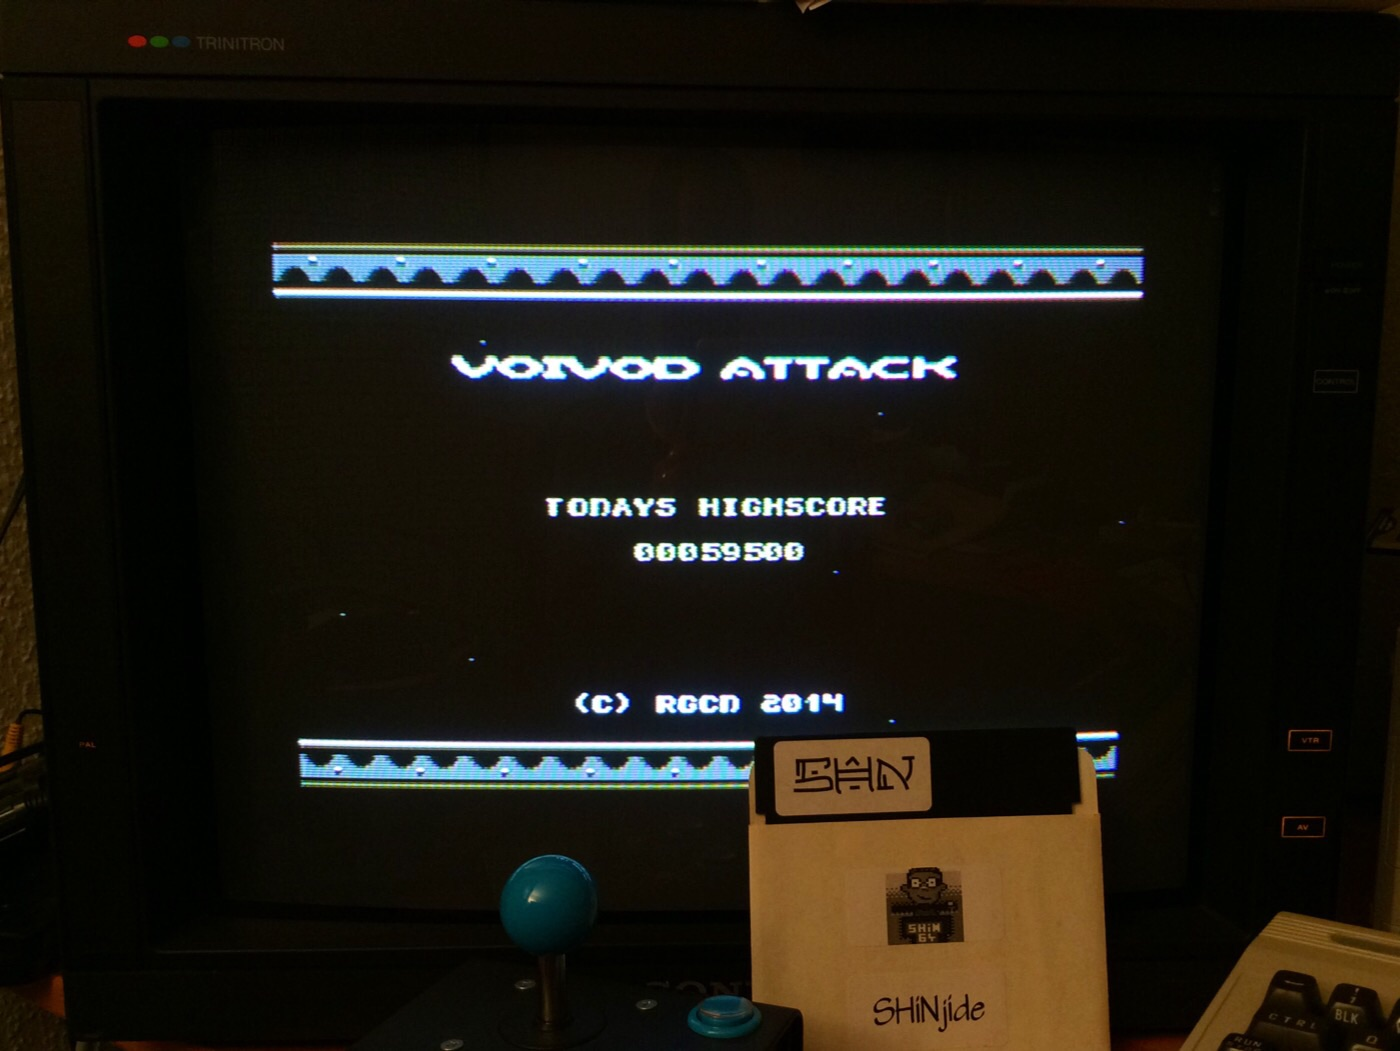 SHiNjide: Voivod Attack (Commodore 64) 59,500 points on 2014-12-04 01:01:39